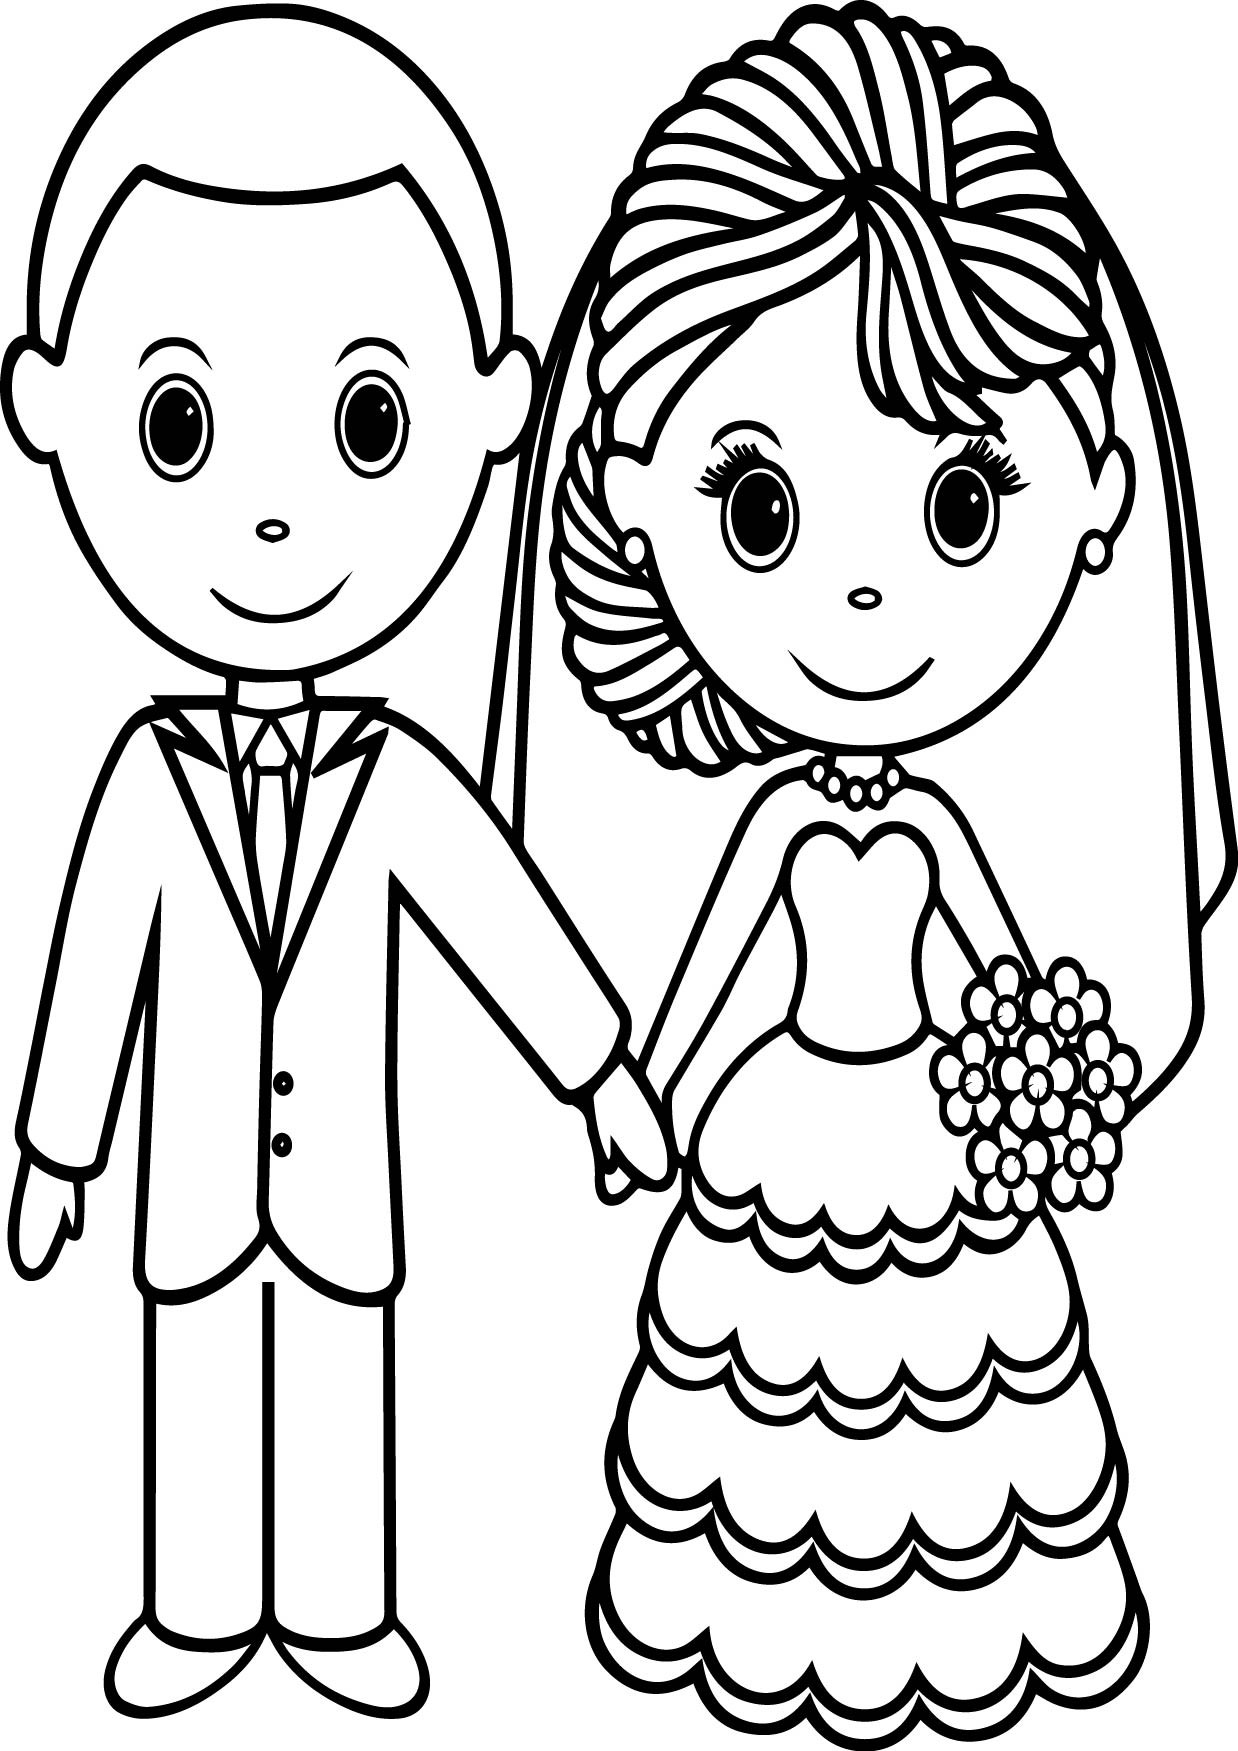 Bride Coloring Pages  Coloring Picture Wedding Cake Colouring Pages Wedding